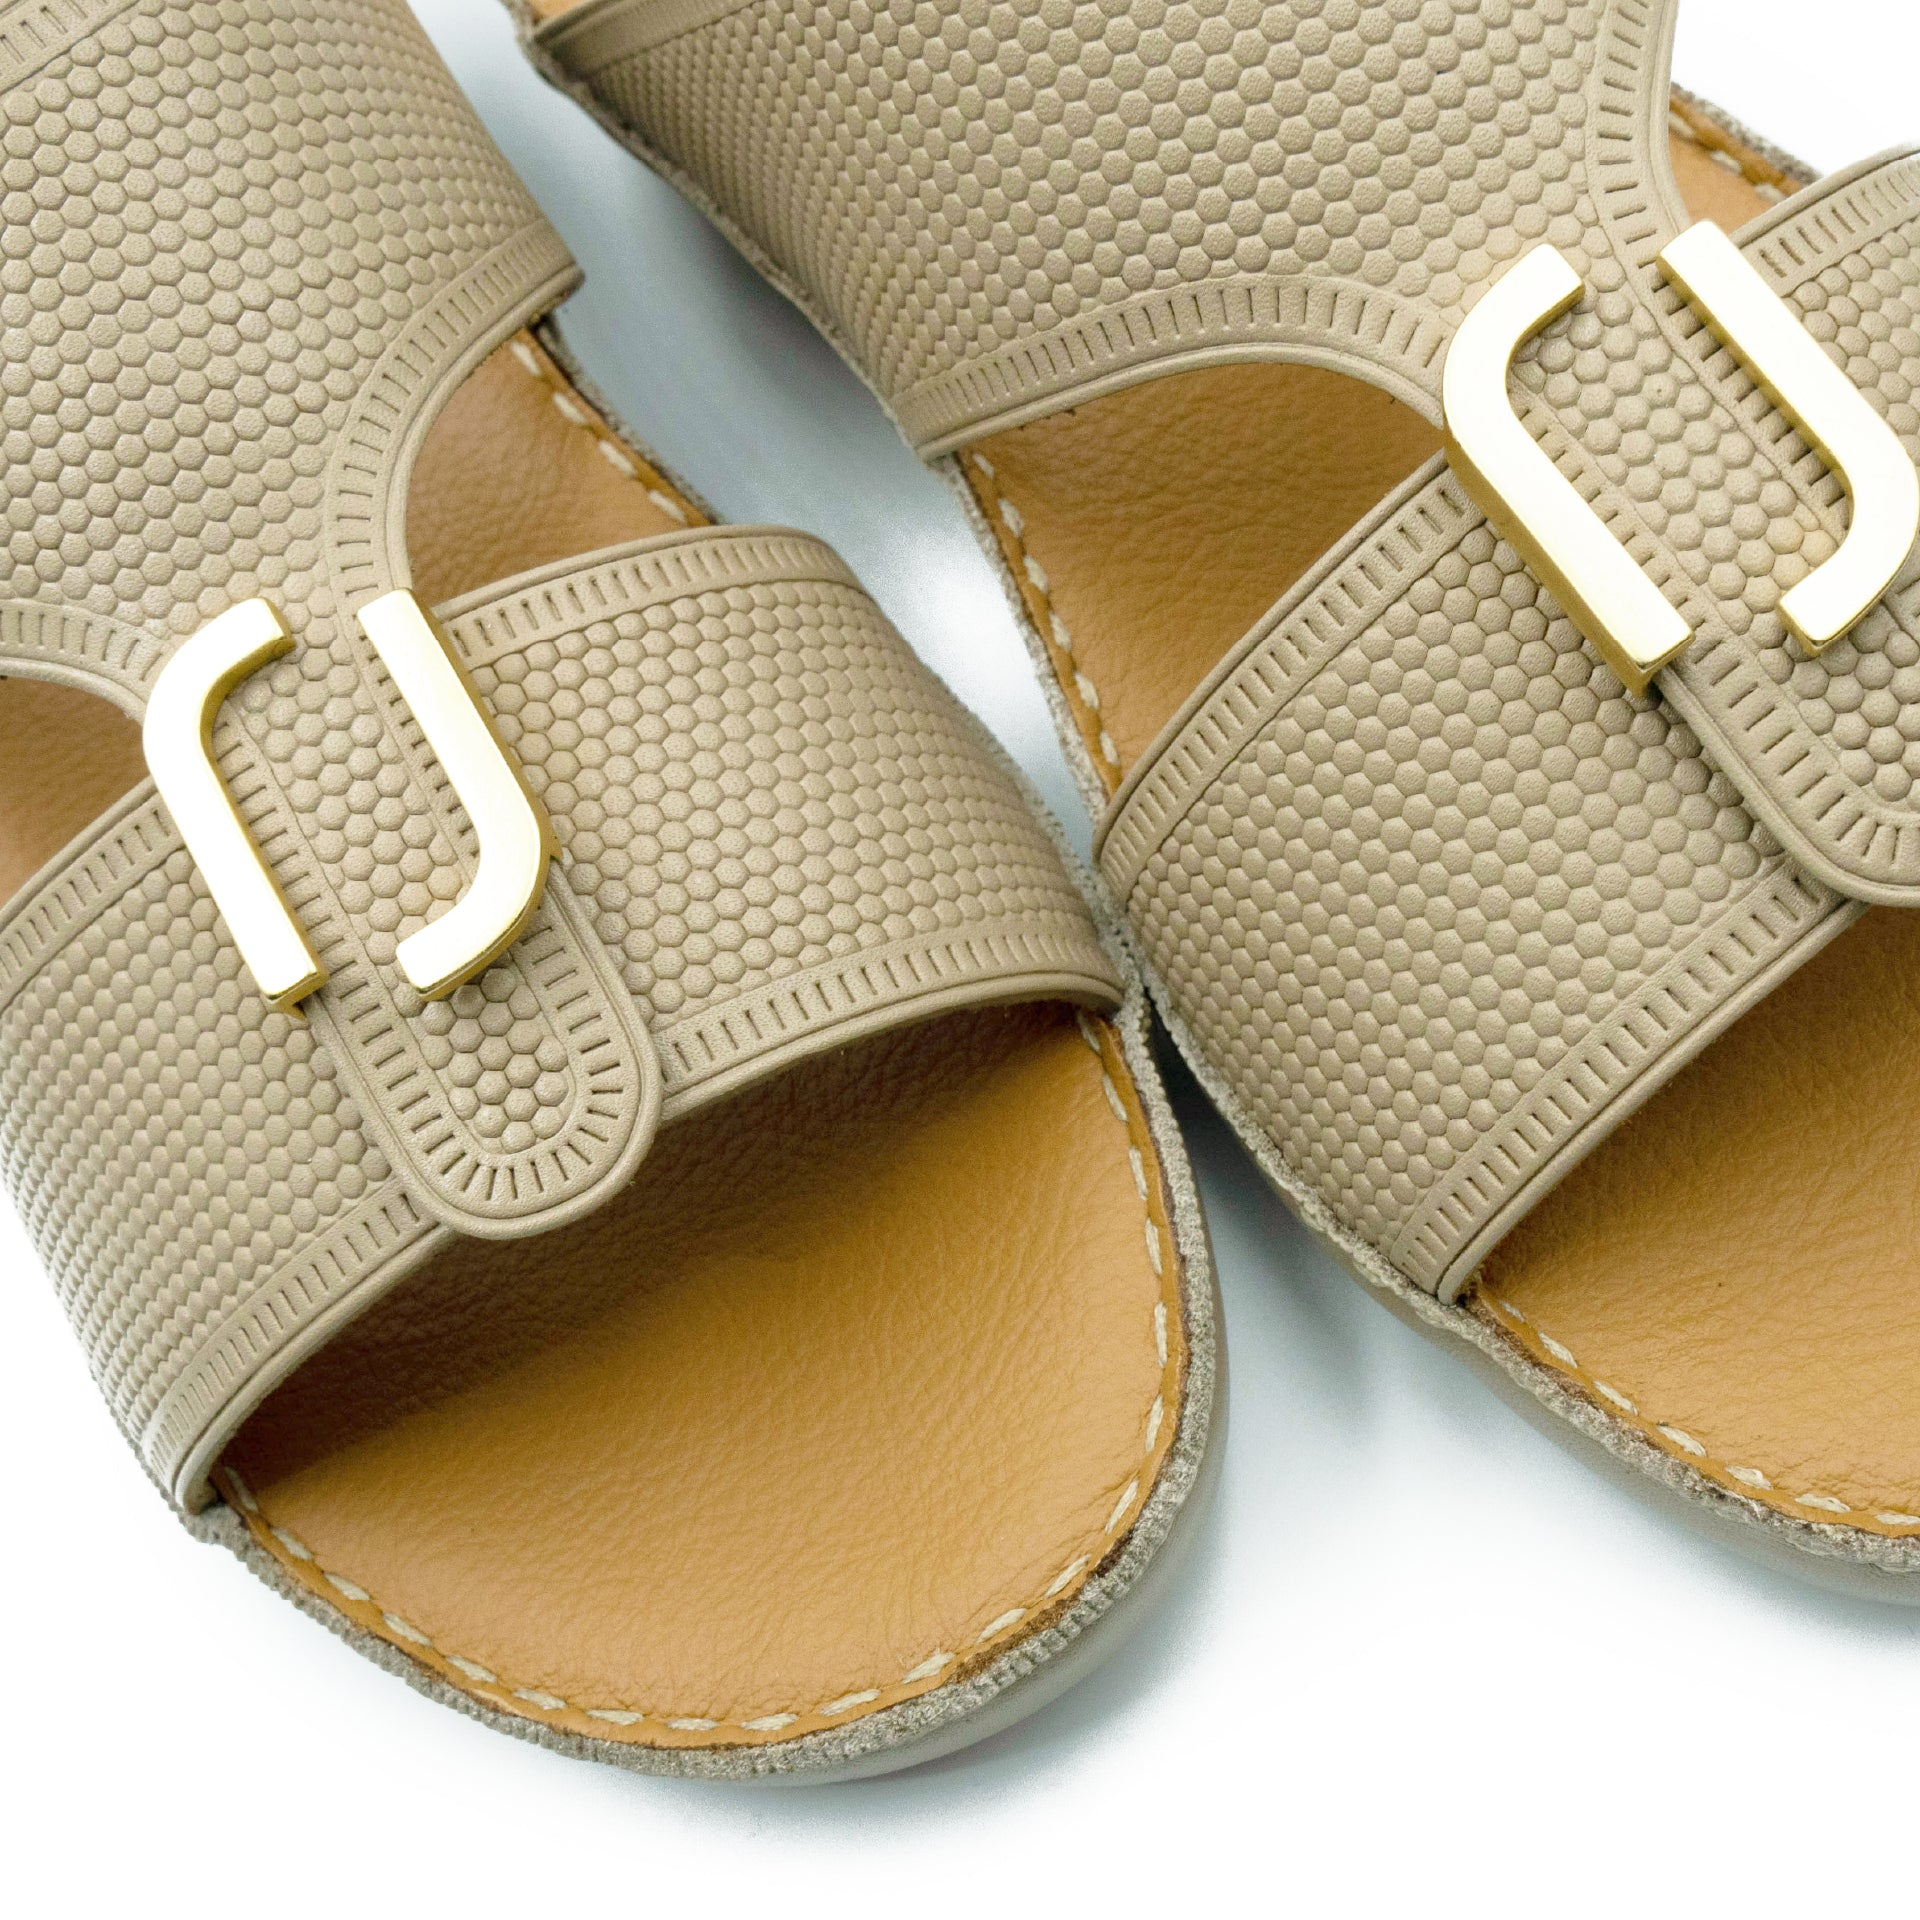 Stone, Embossed, Classic, Ramadan, Collection, Arabic, Sandals,  Accessories